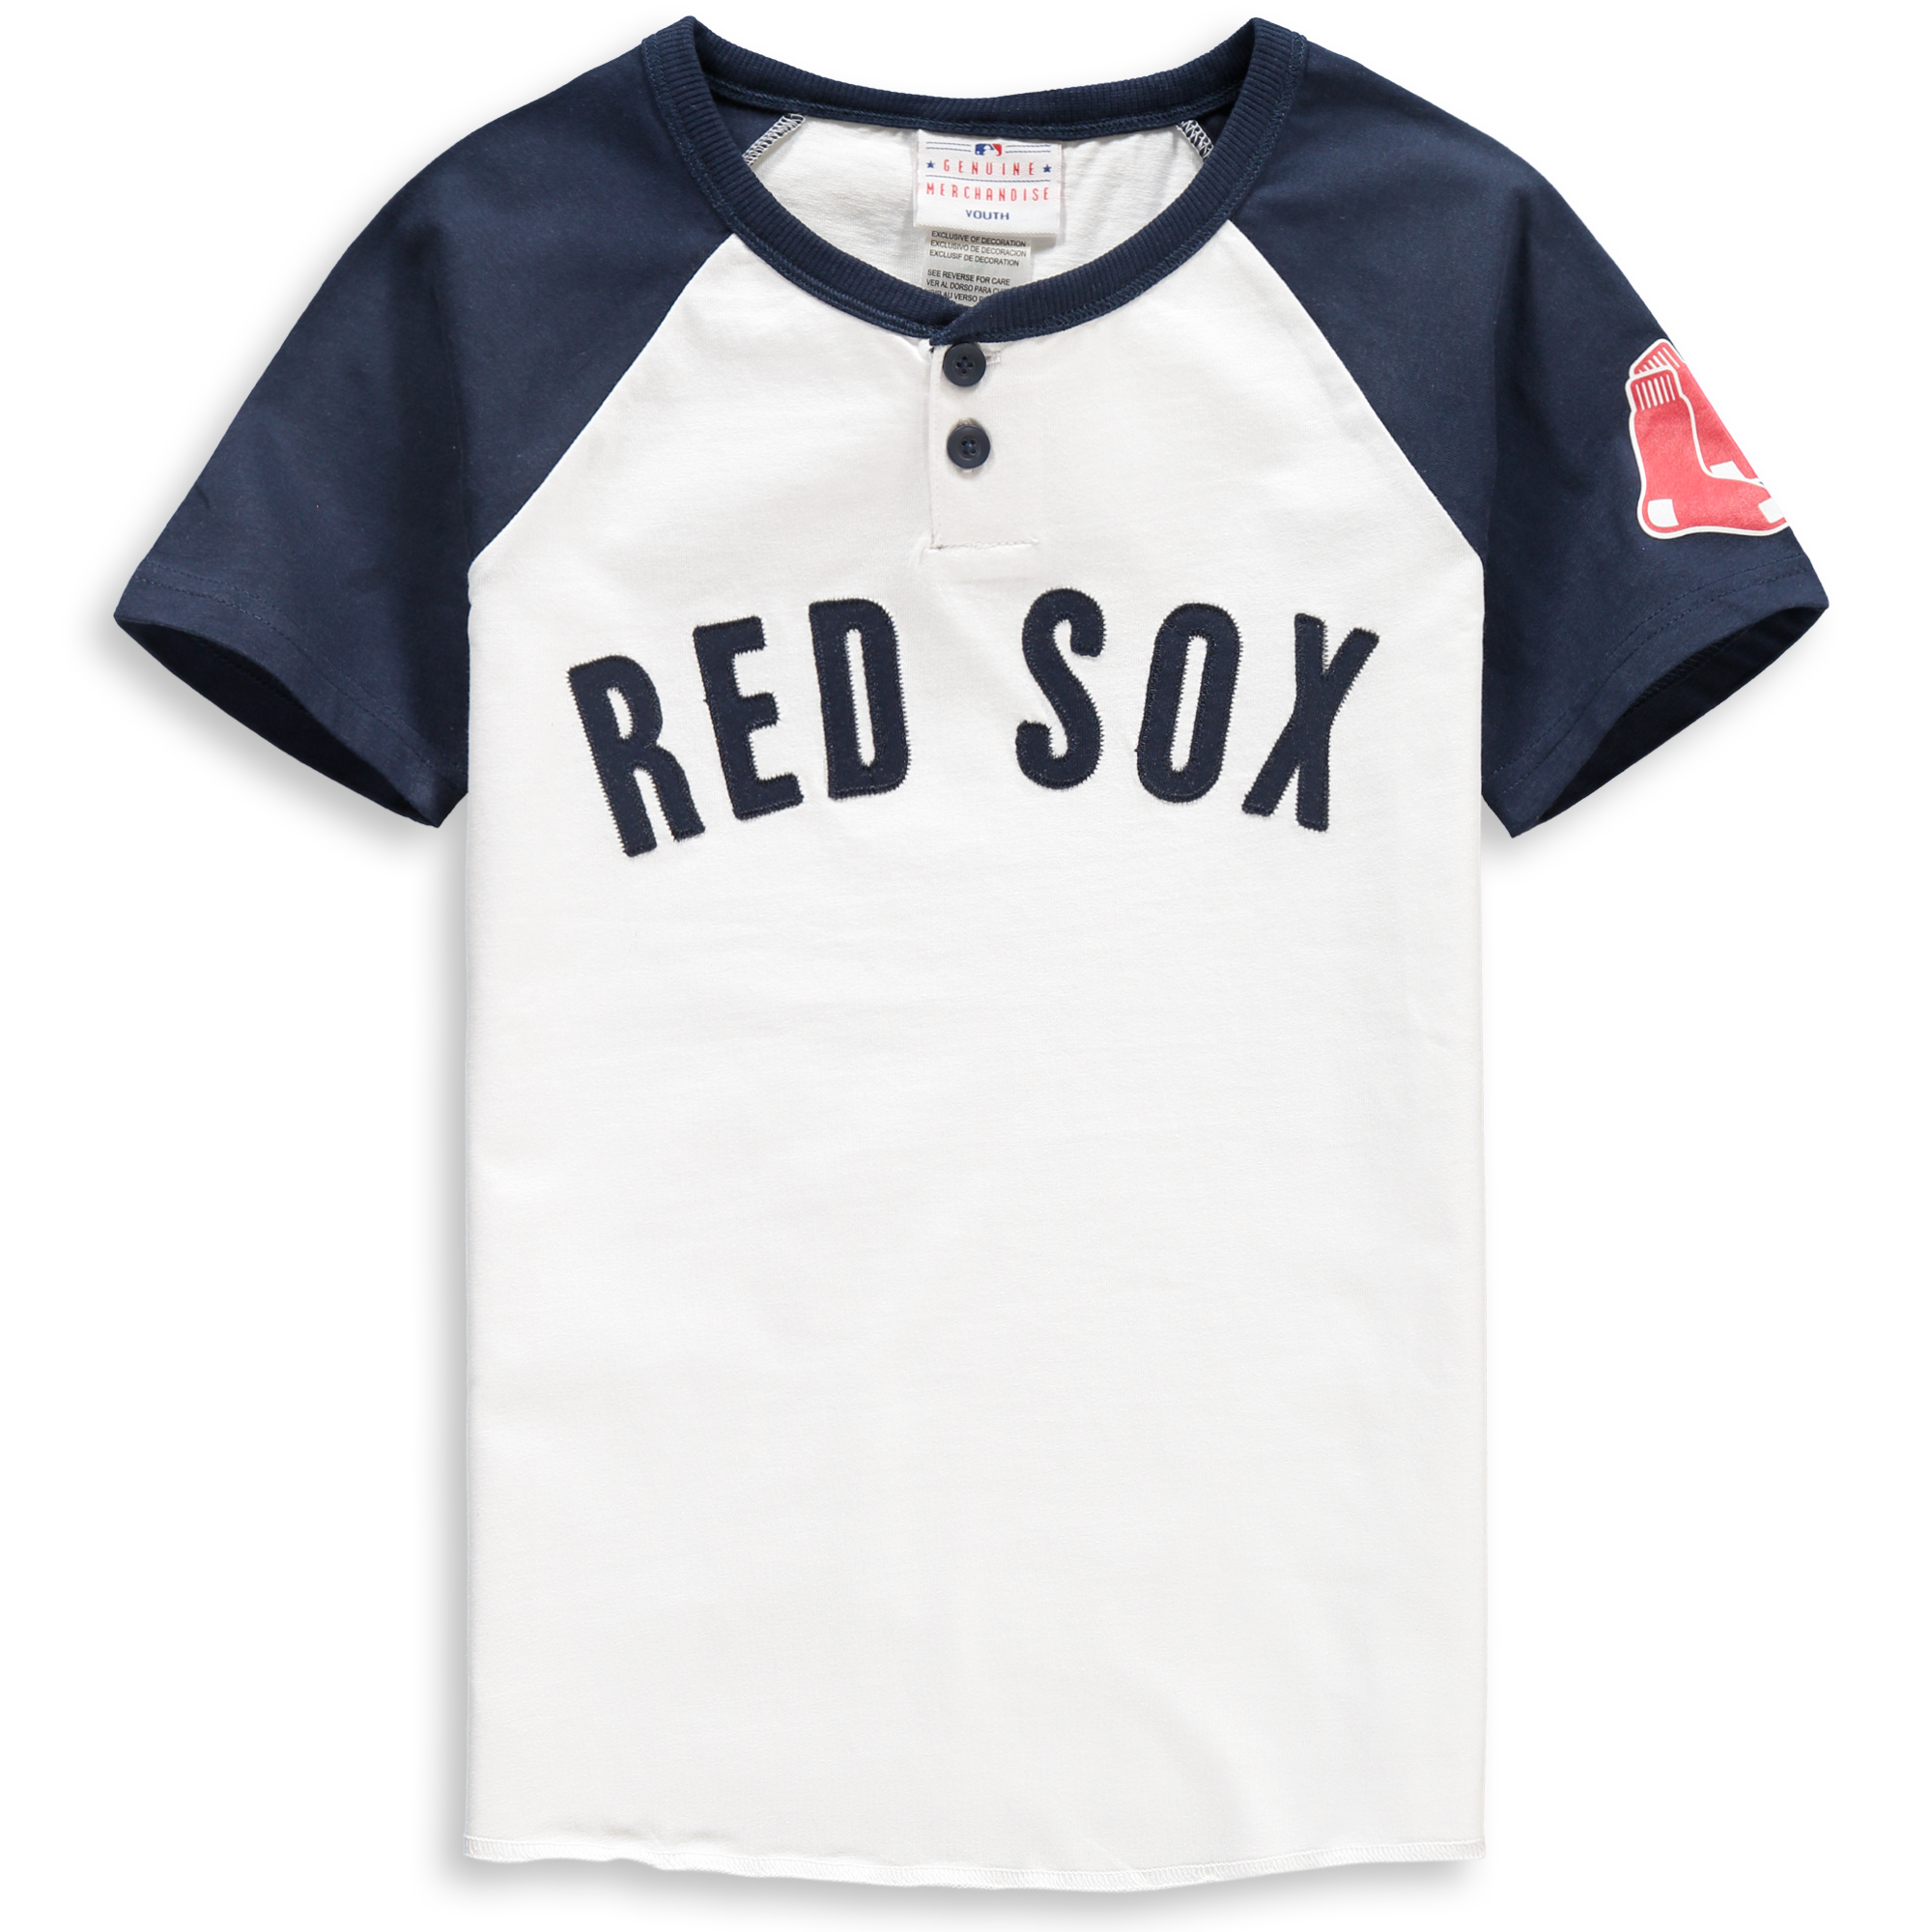 Boston Red Sox Youth Game Day Jersey T-Shirt - White/Navy